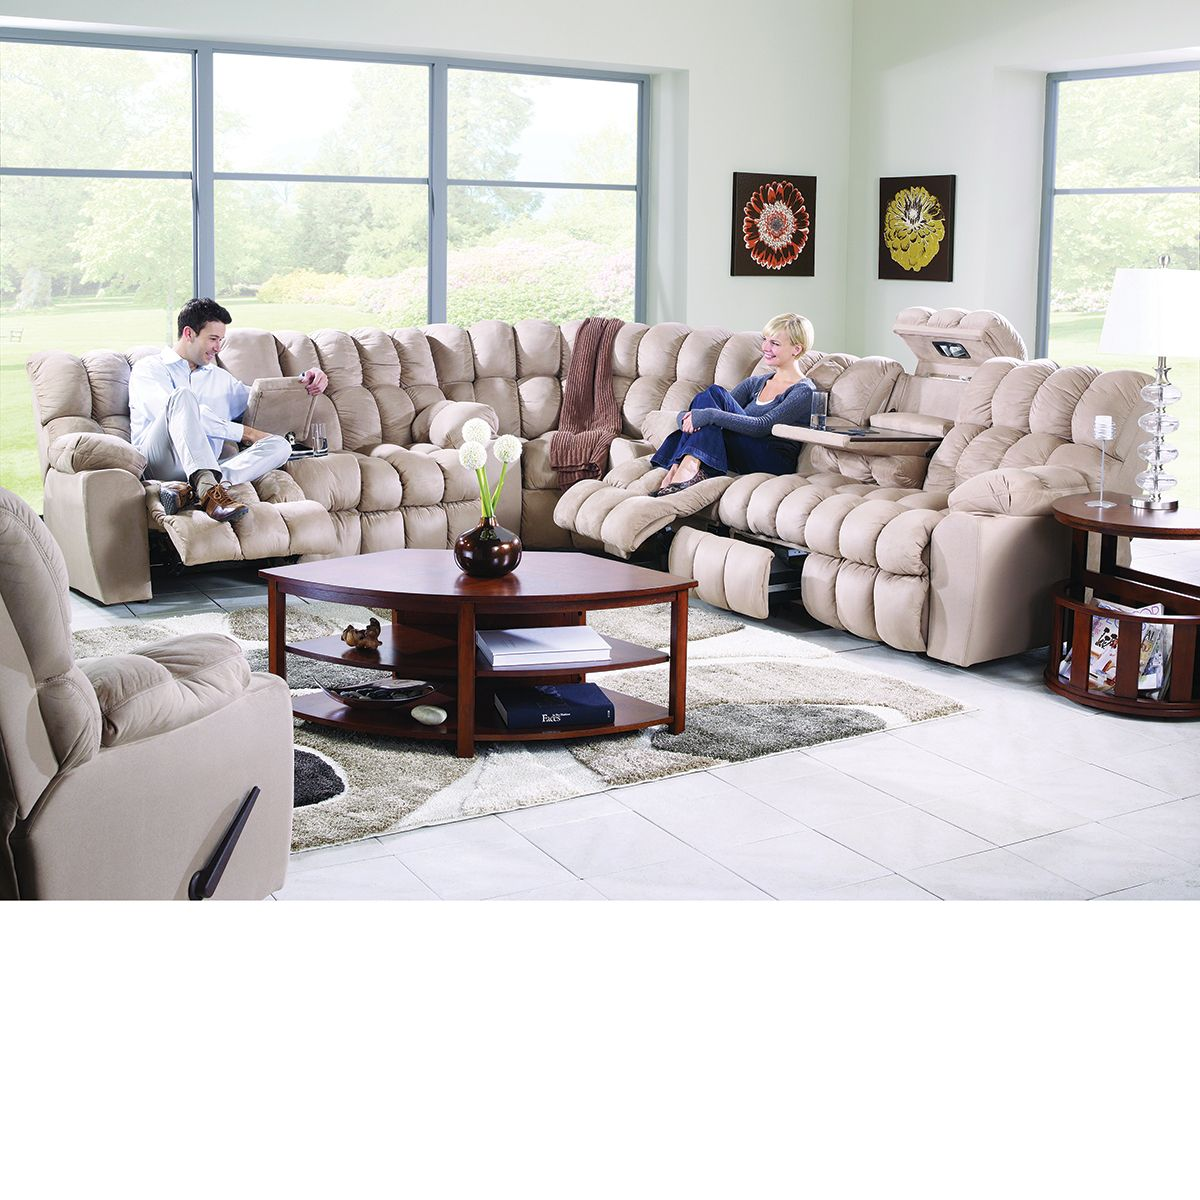 Phenomenal The Dump Furniture Sectional With 4 Reclining Seats Andrewgaddart Wooden Chair Designs For Living Room Andrewgaddartcom